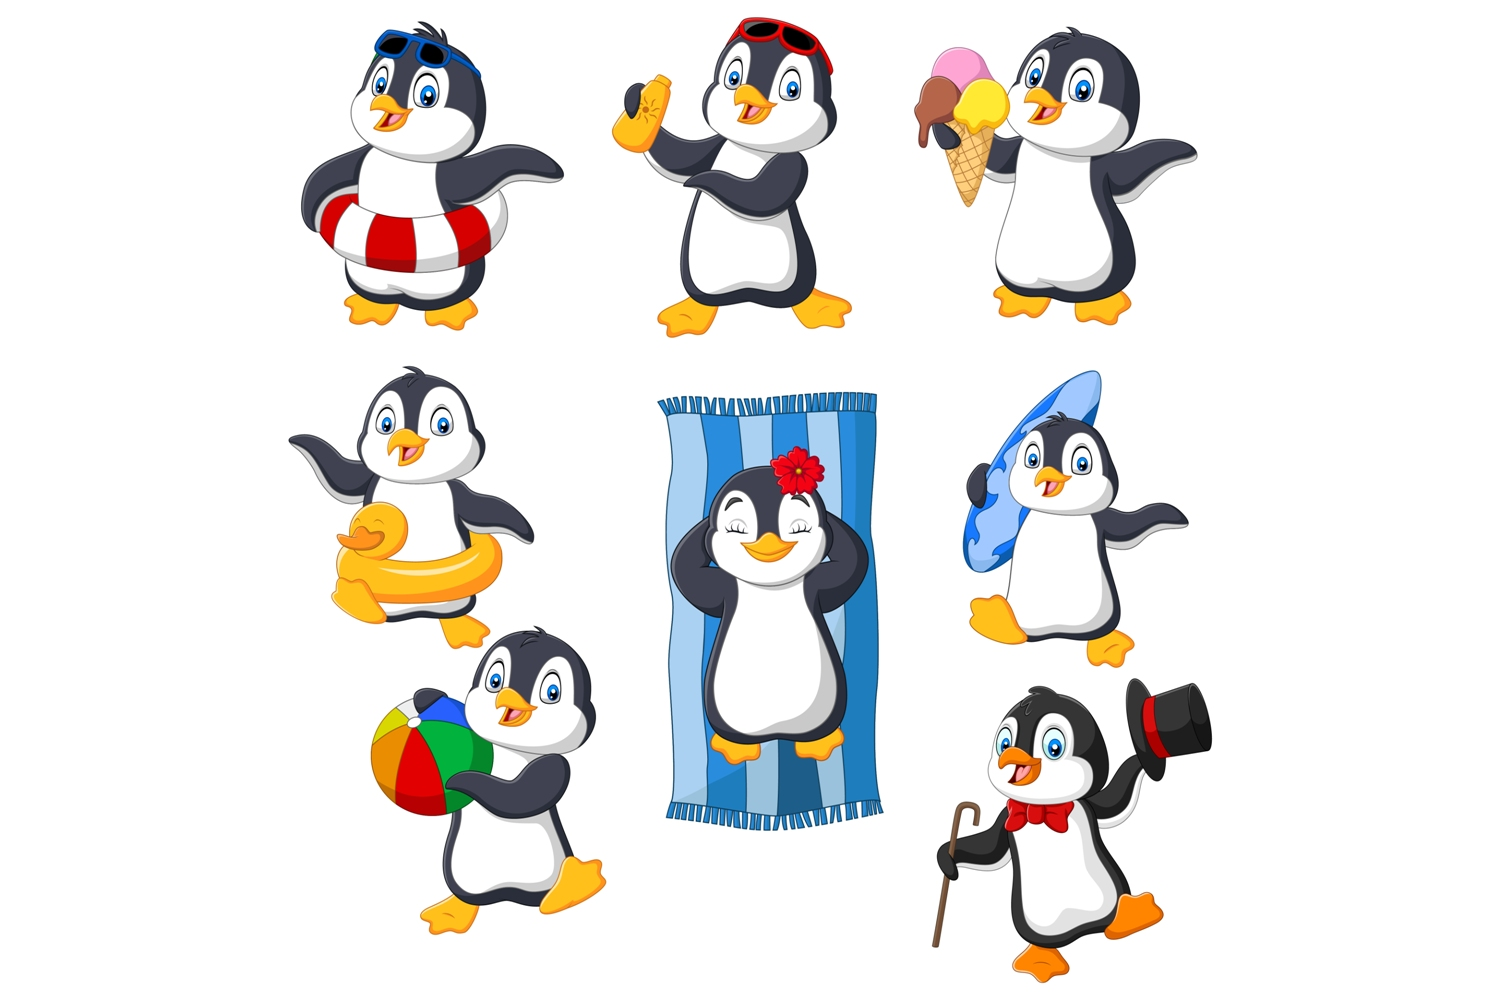 Cartoon Penguins Clipart Graphic By Tigatelusiji Creative Fabrica